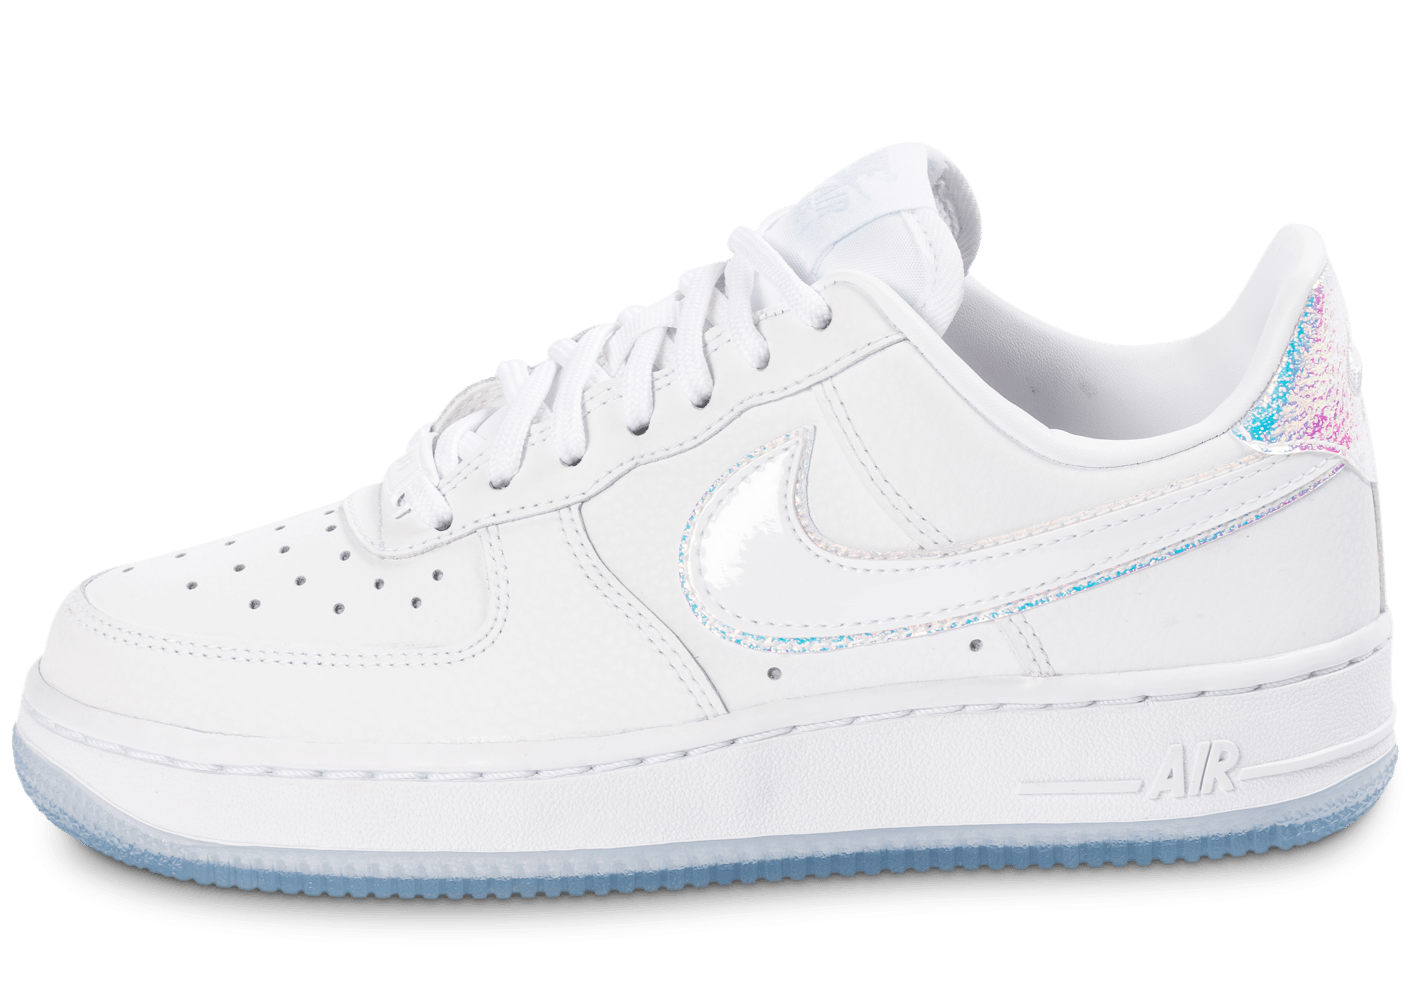 Nike Air Force 1 07 PRM Iridescente Chaussures Baskets